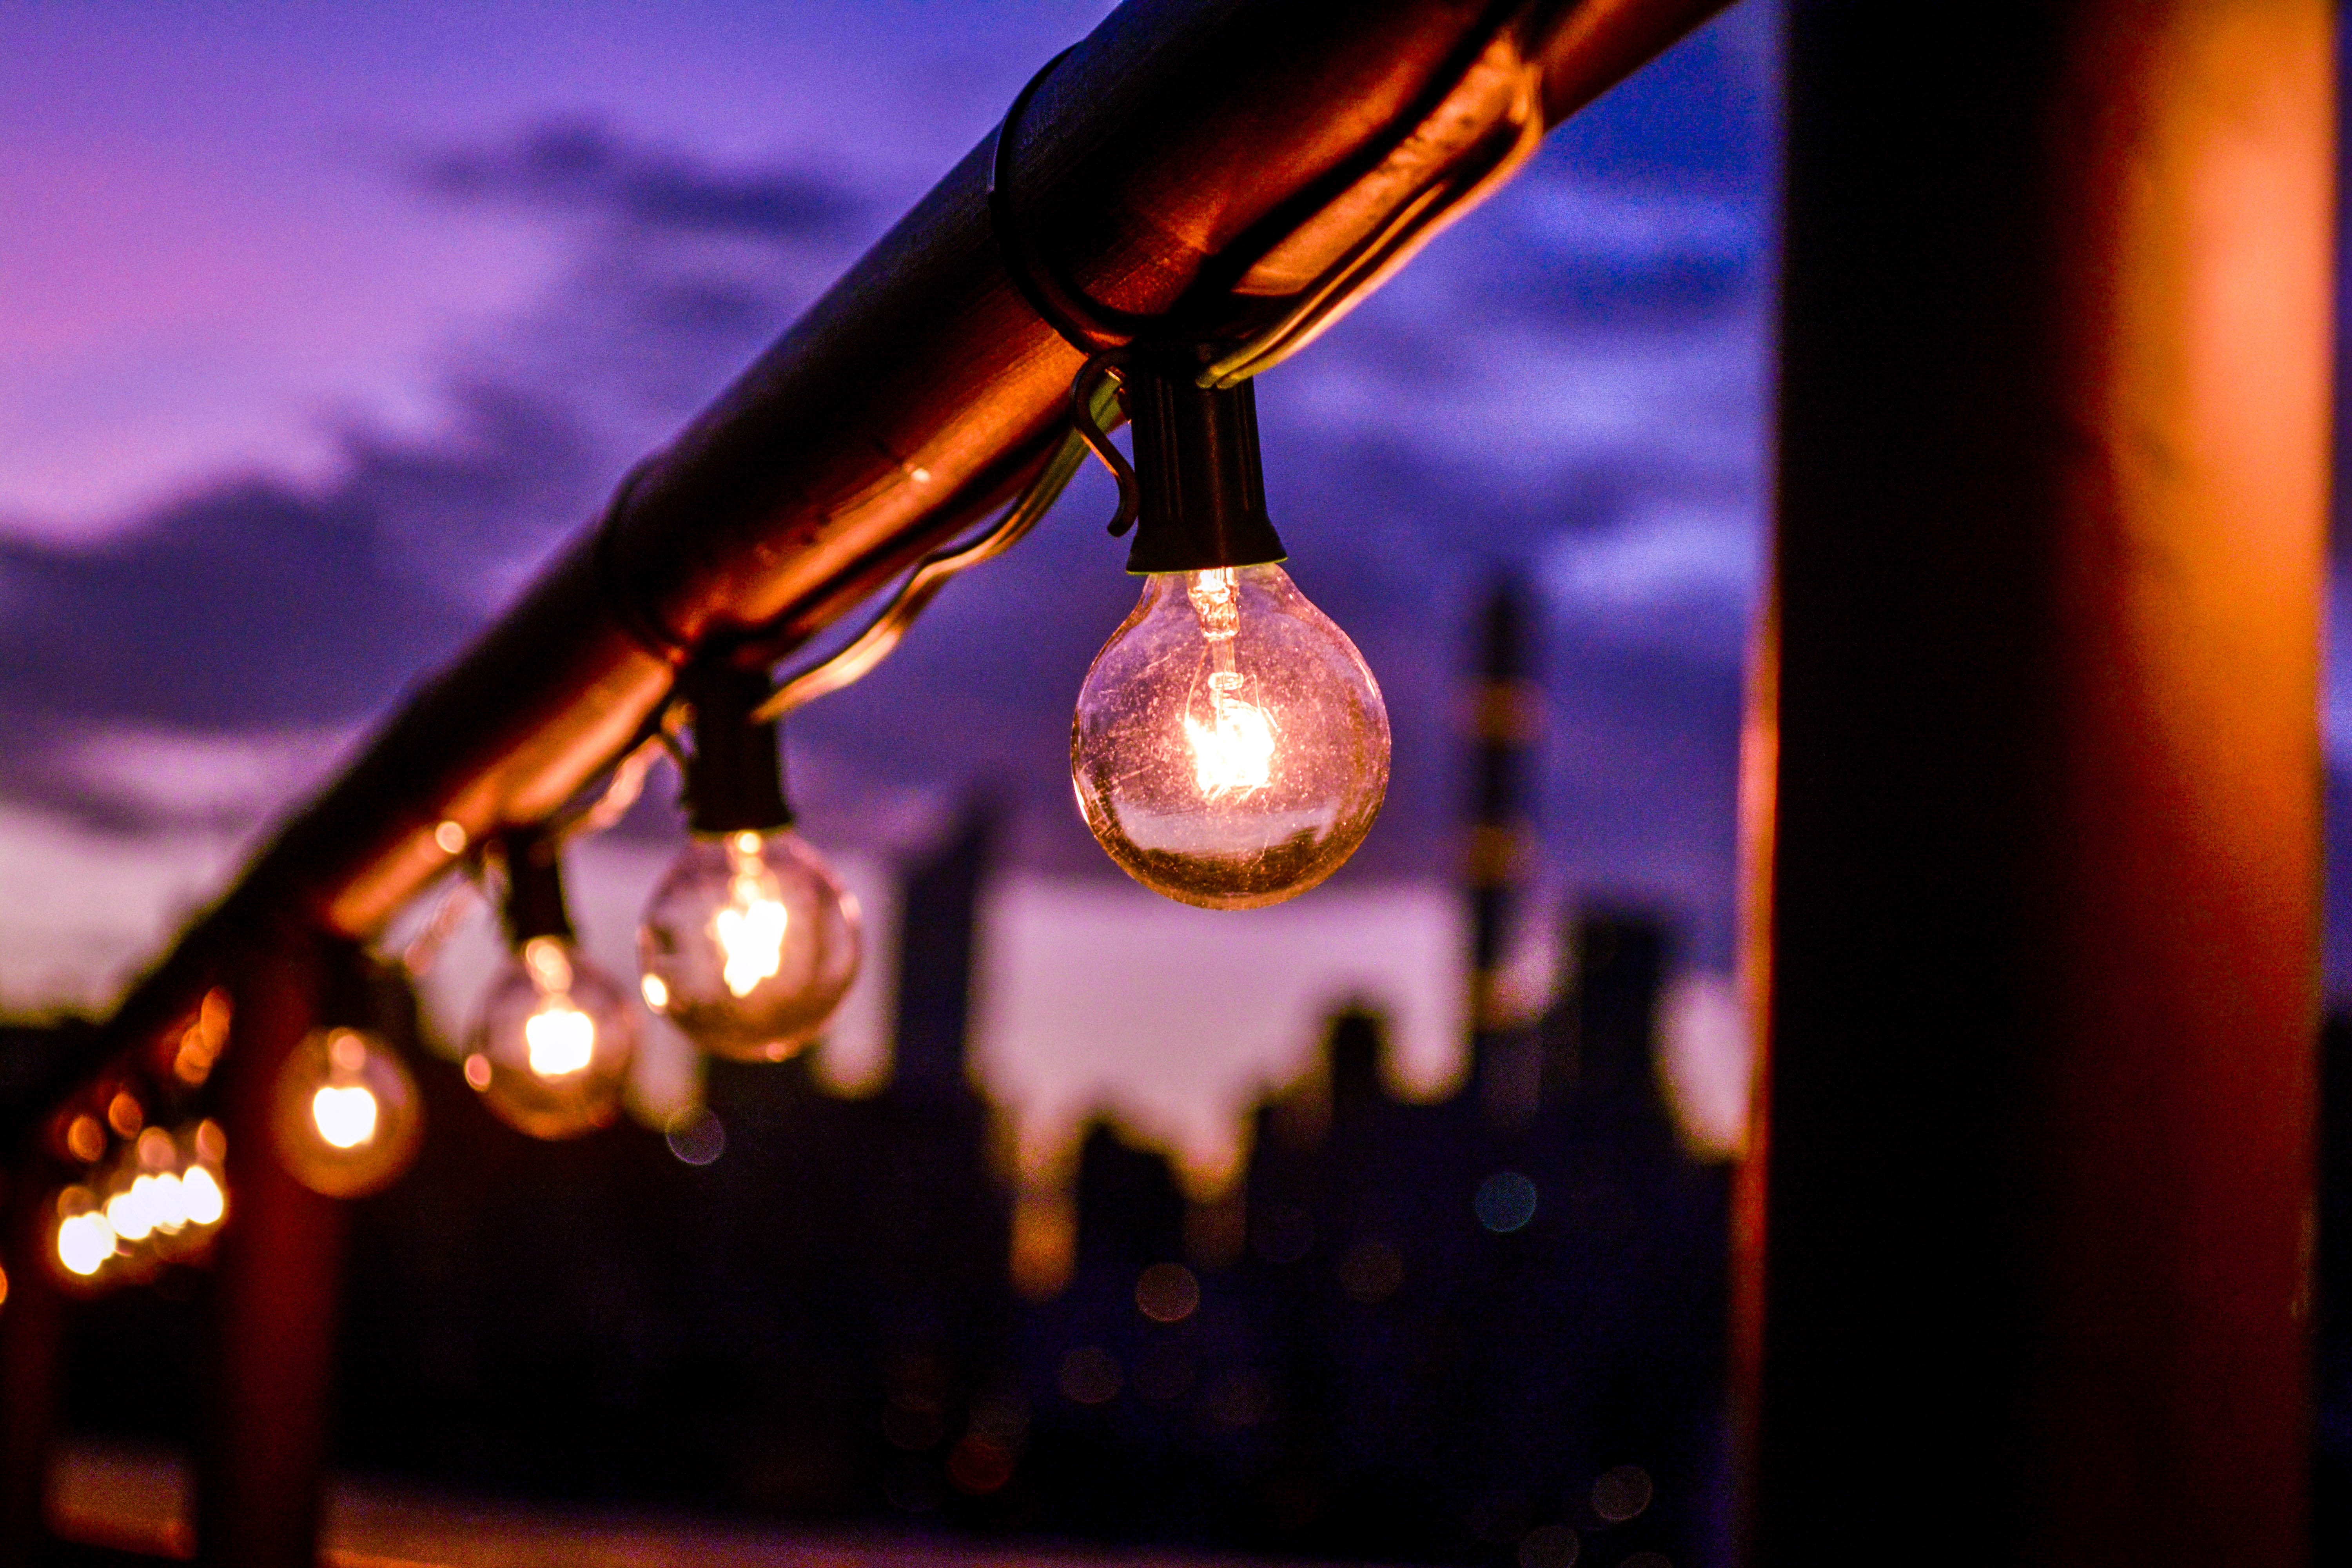 incandescent bulbs hanging on red steel frame